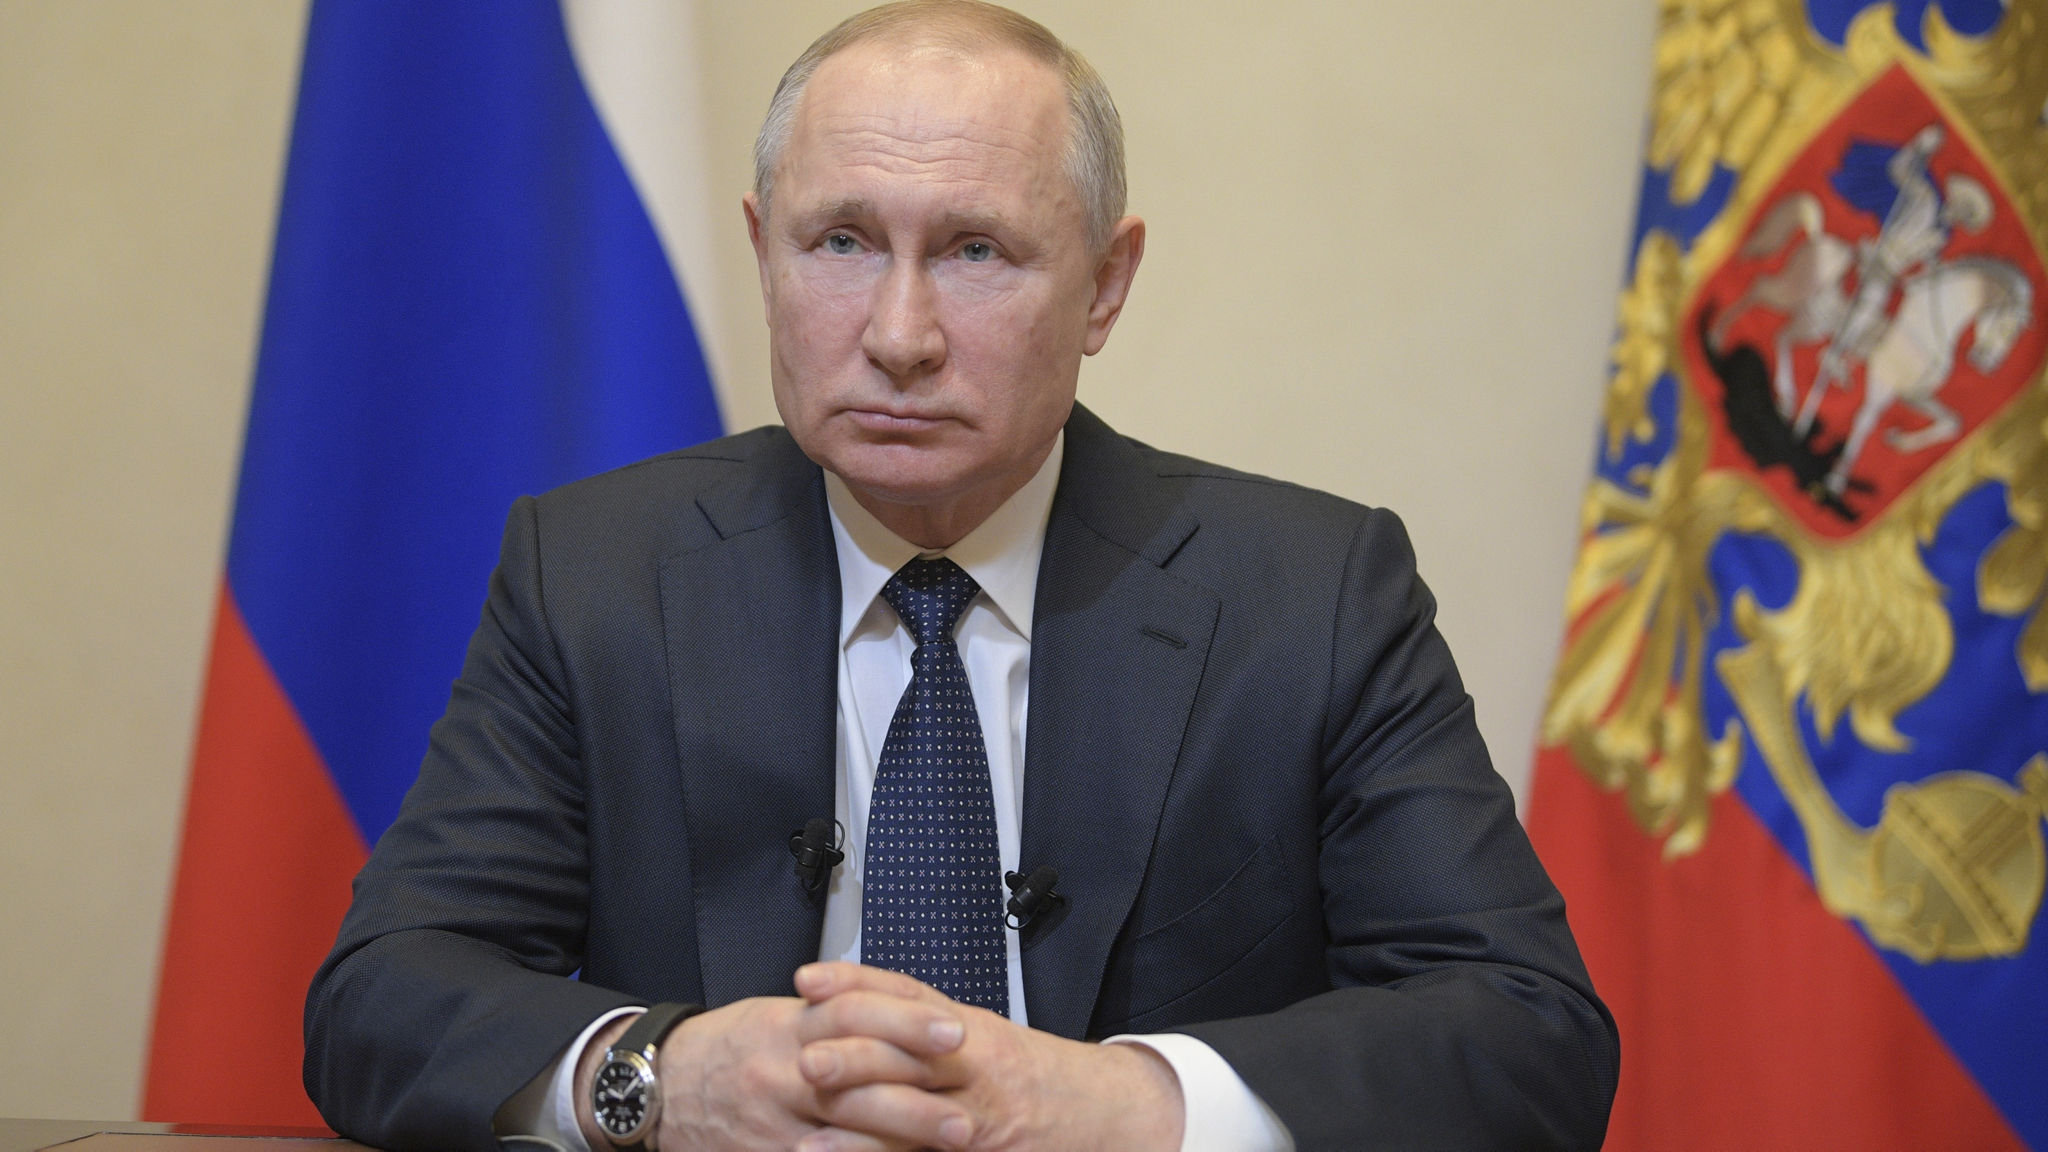 Vladimir Putin Postpones Vote On Extending His Rule Financial Times